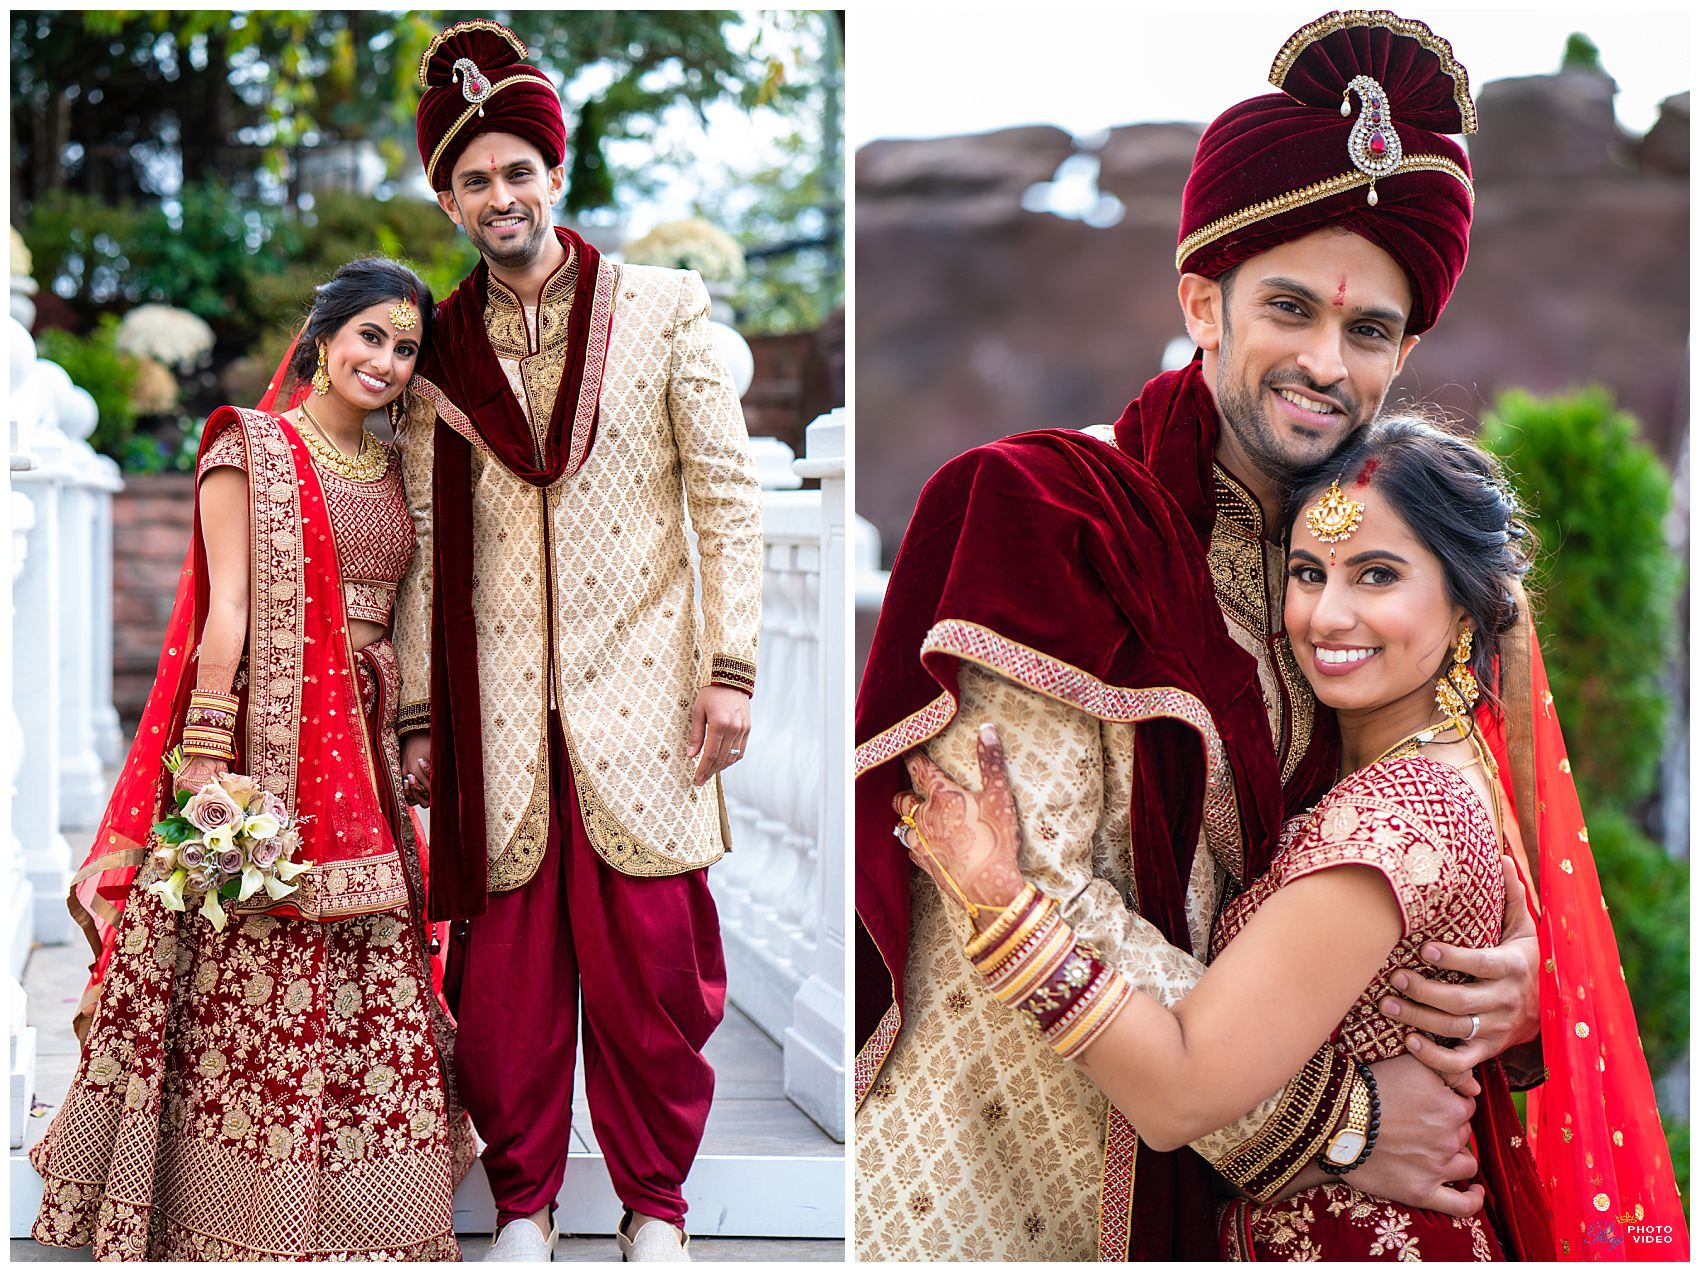 Luciens Manor Berlin Nj Hindu Wedding Sonia Avinash